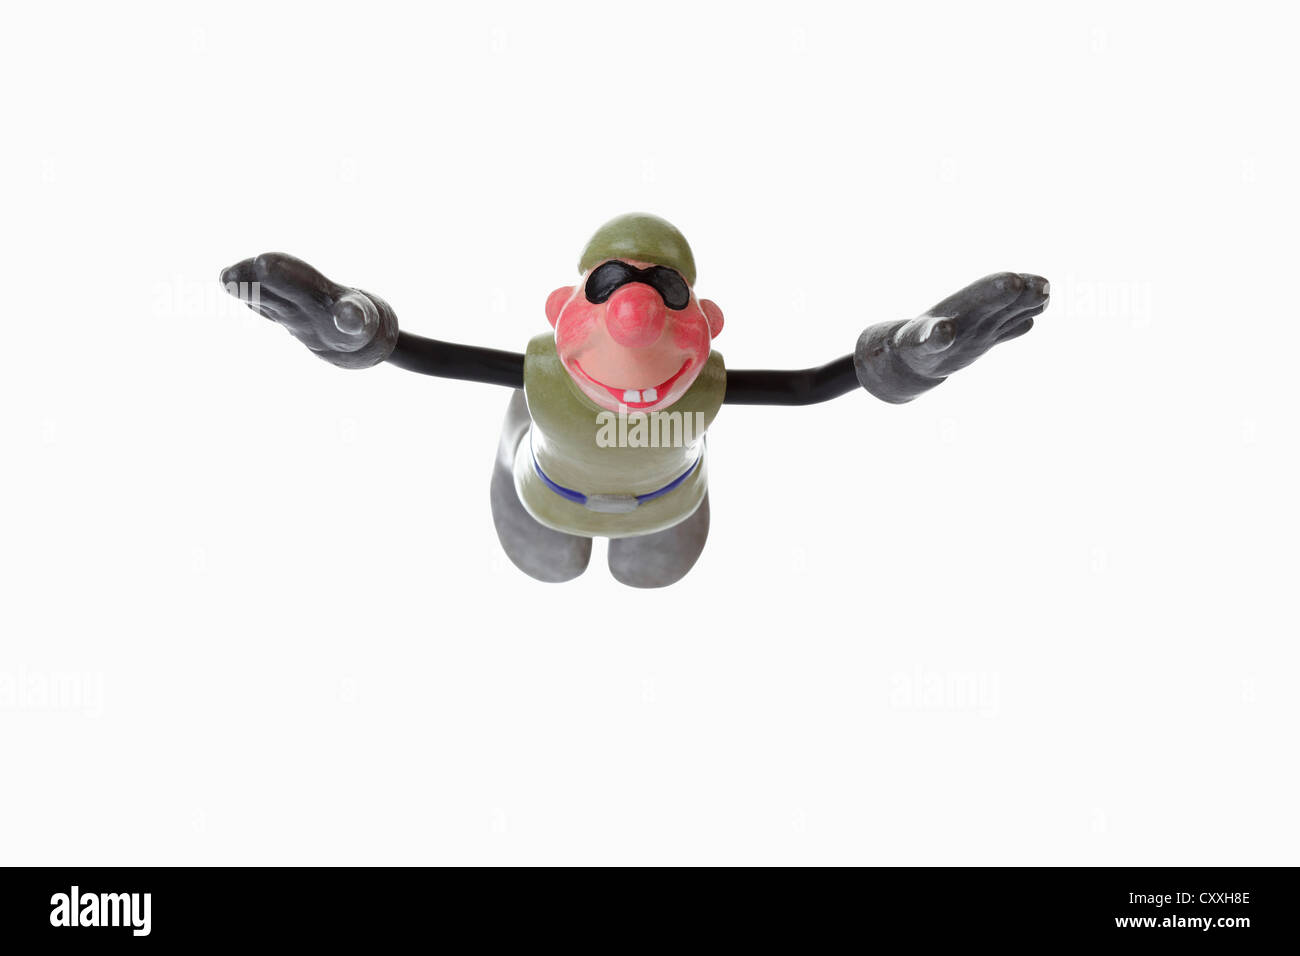 Comic figure, basejumper in free fall - Stock Image